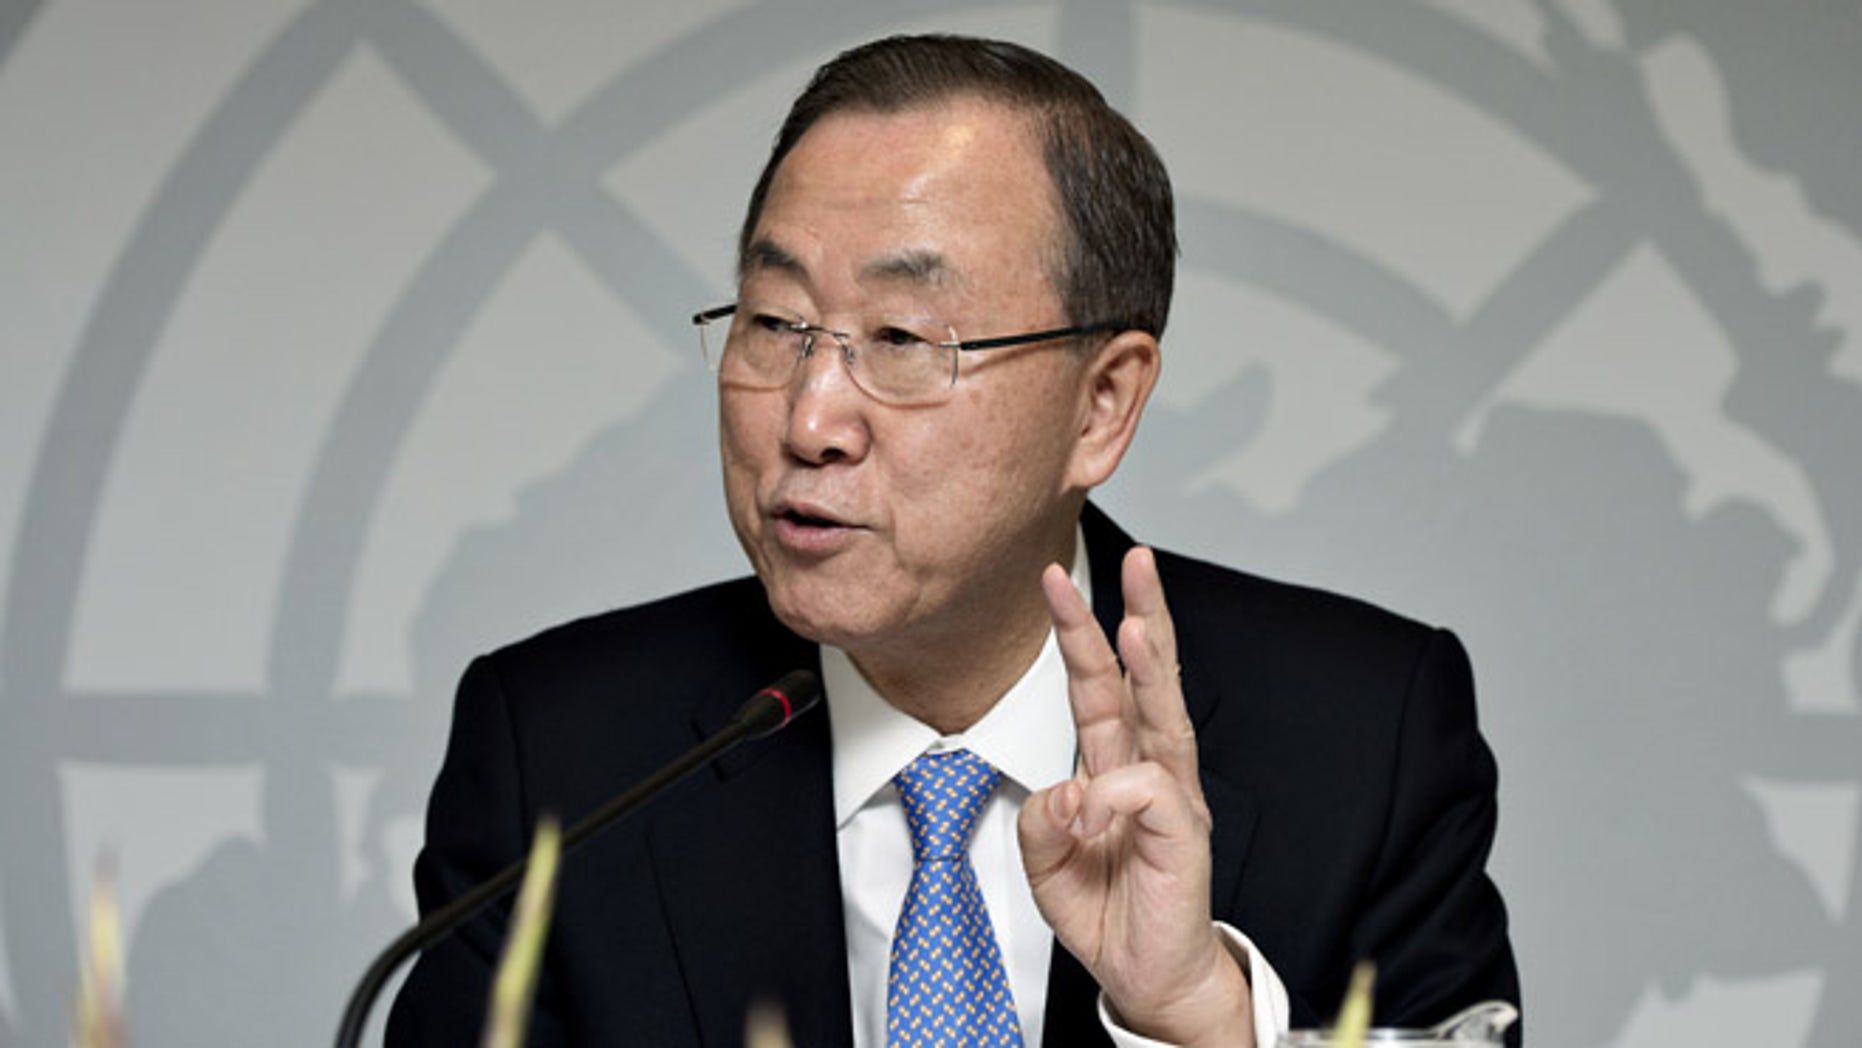 Oct. 23, 2013: UN General Secretary Ban Ki-moon gestures,  during a press conference in Copenhagen.